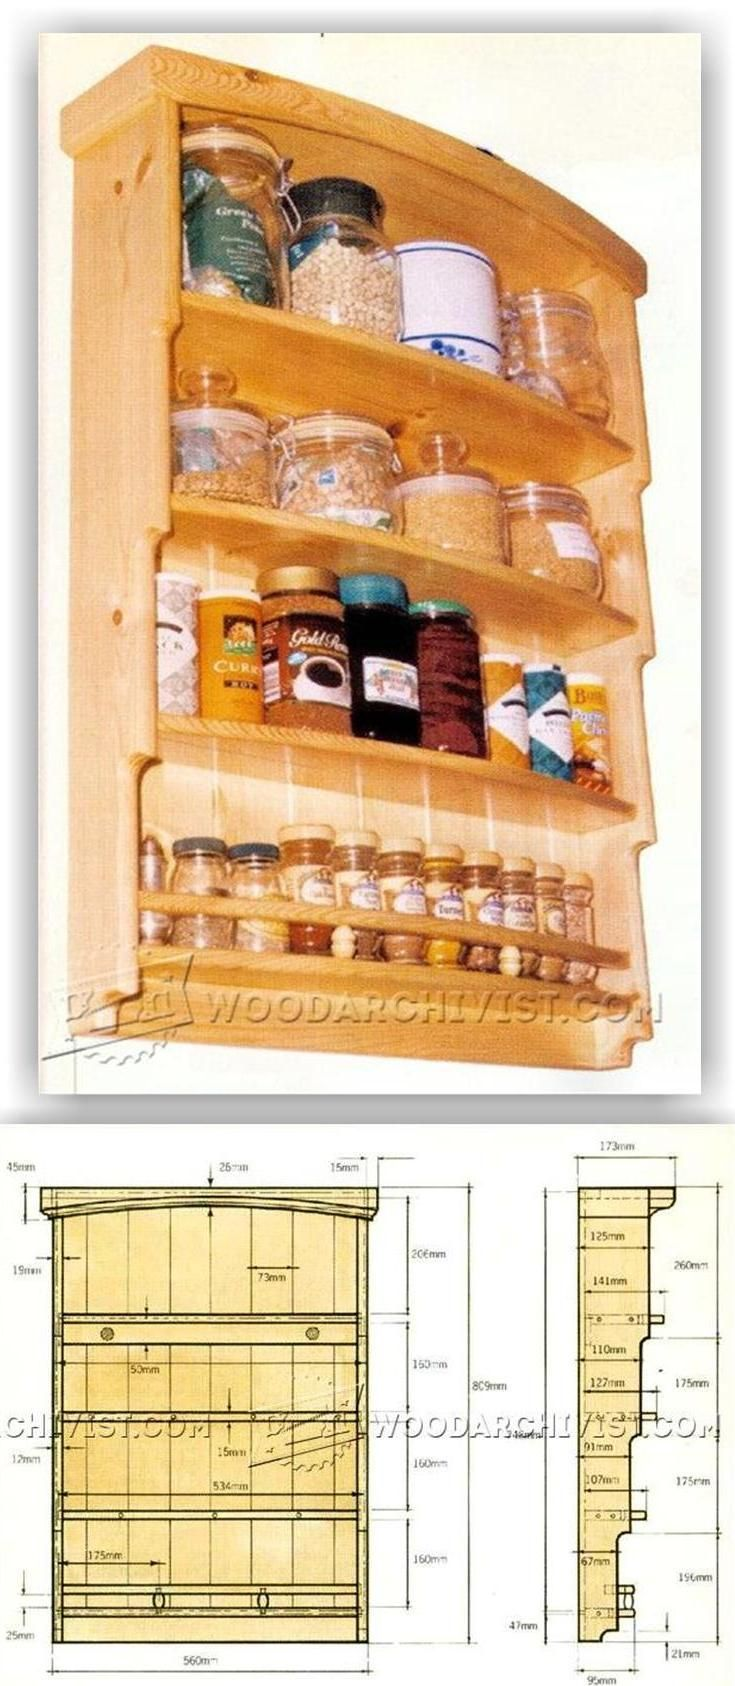 Spice Rack Plans - Woodworking Plans and Projects   WoodArchivist.com